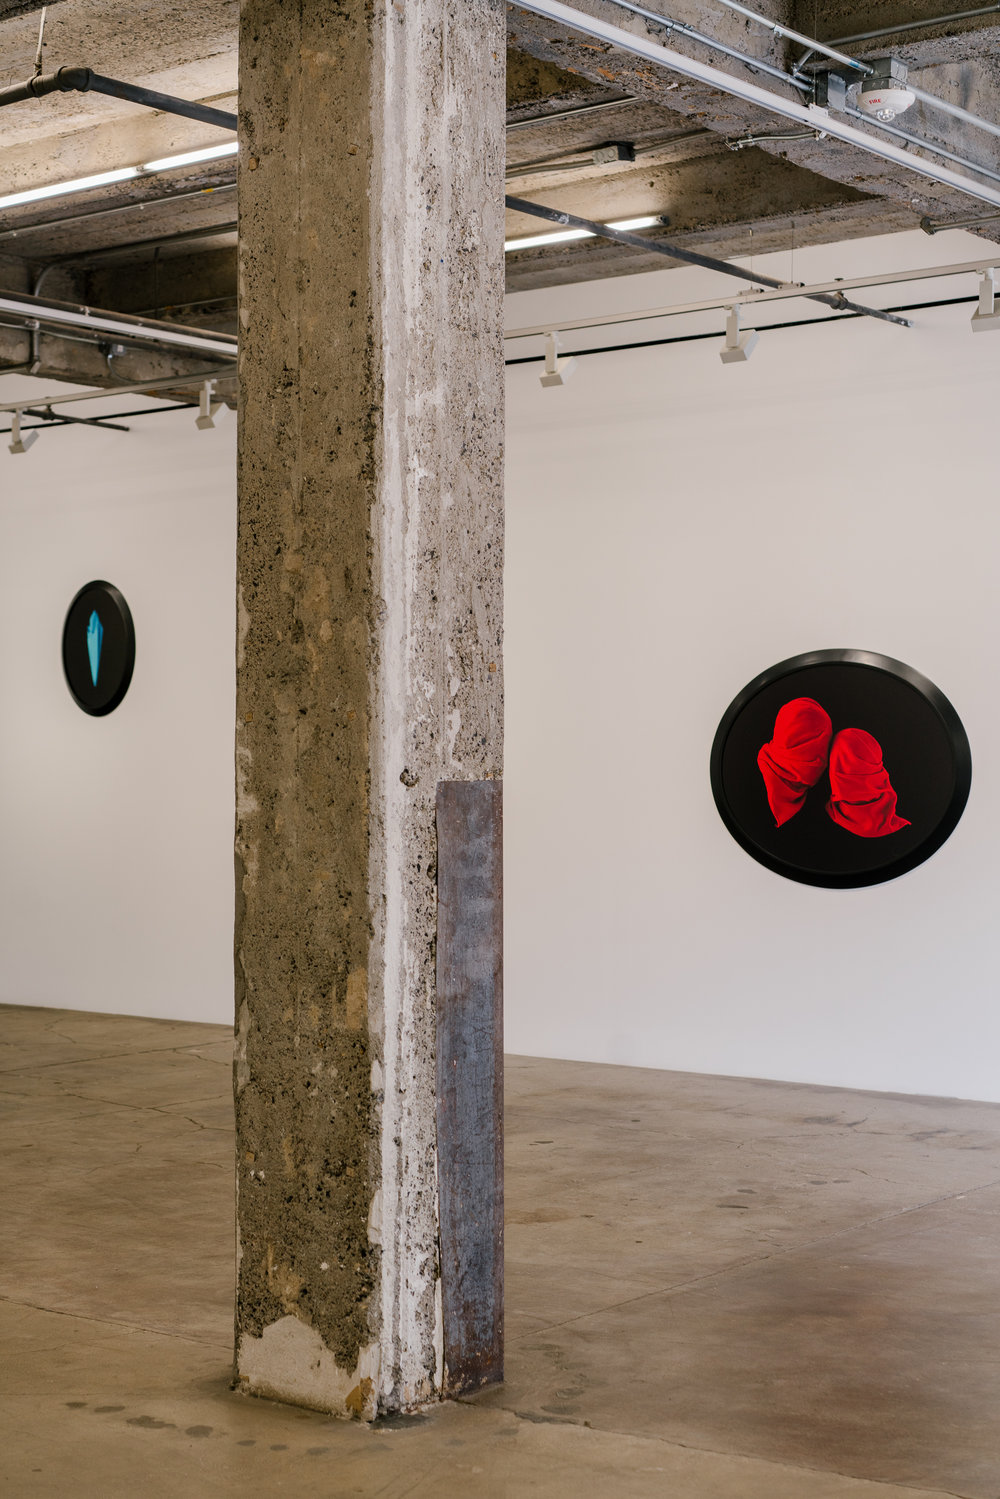 """""""Anti-Gravity,"""" and """"Red Veils,"""" by Sarah Charlesworth from the exhibition """"Natural Magic,"""" at Maccarone gallery."""